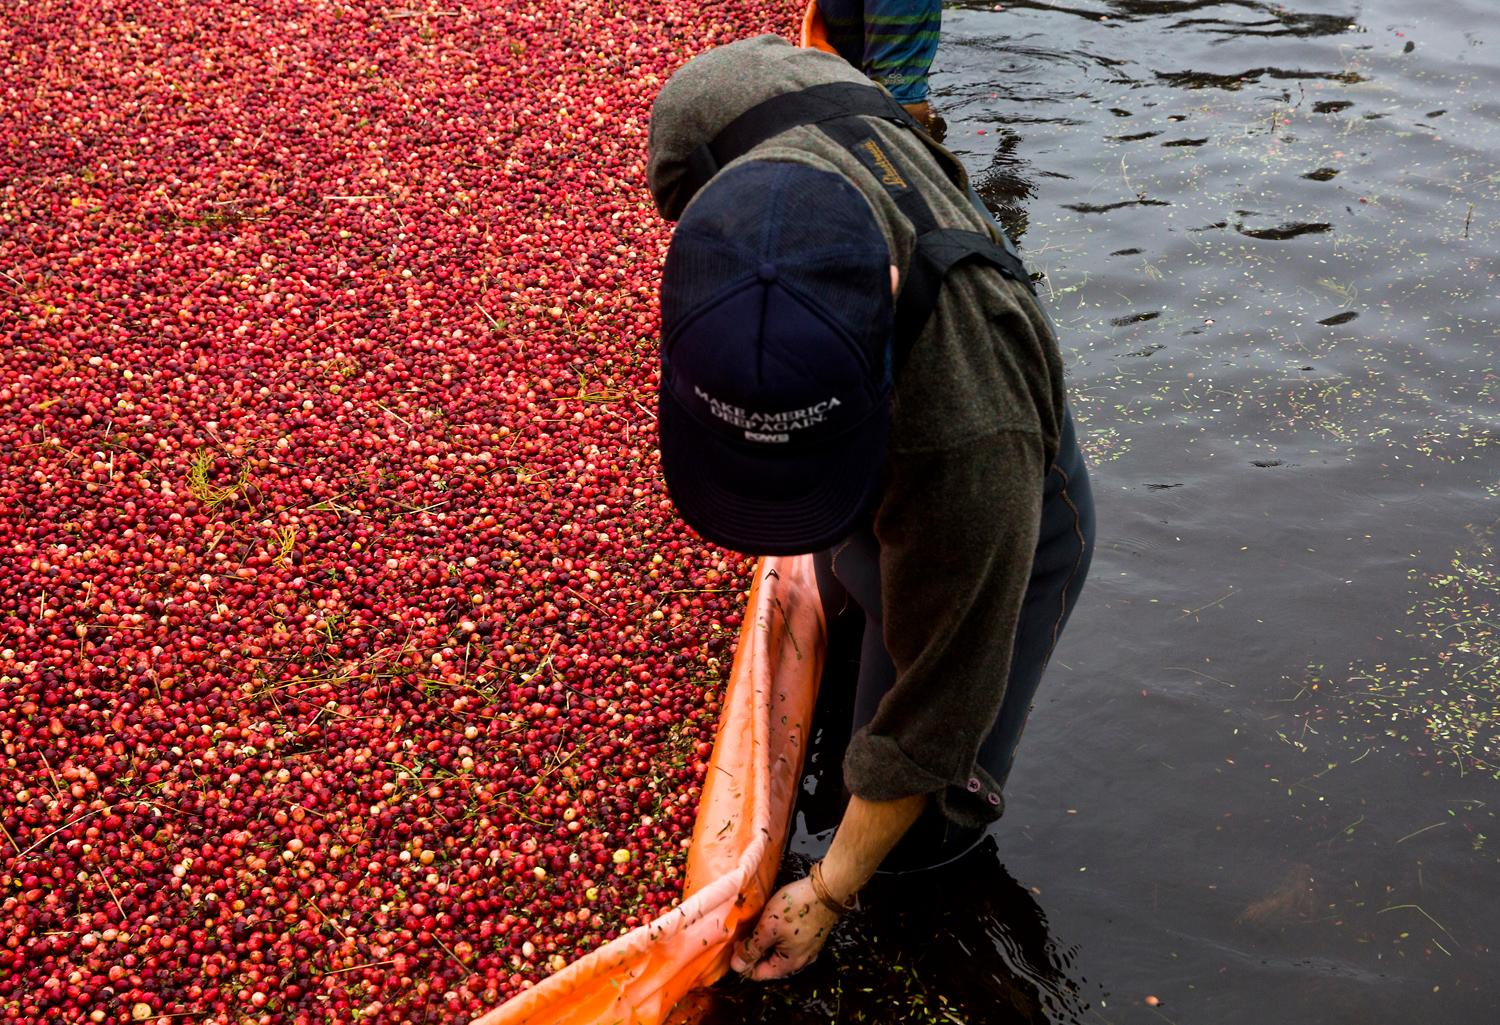 Workers and volunteers corral the floating cranberries with a floating boom and metal rakes during the annual harvest at Starvation Alley Farms. (Sy Bean / Seattle Refined)